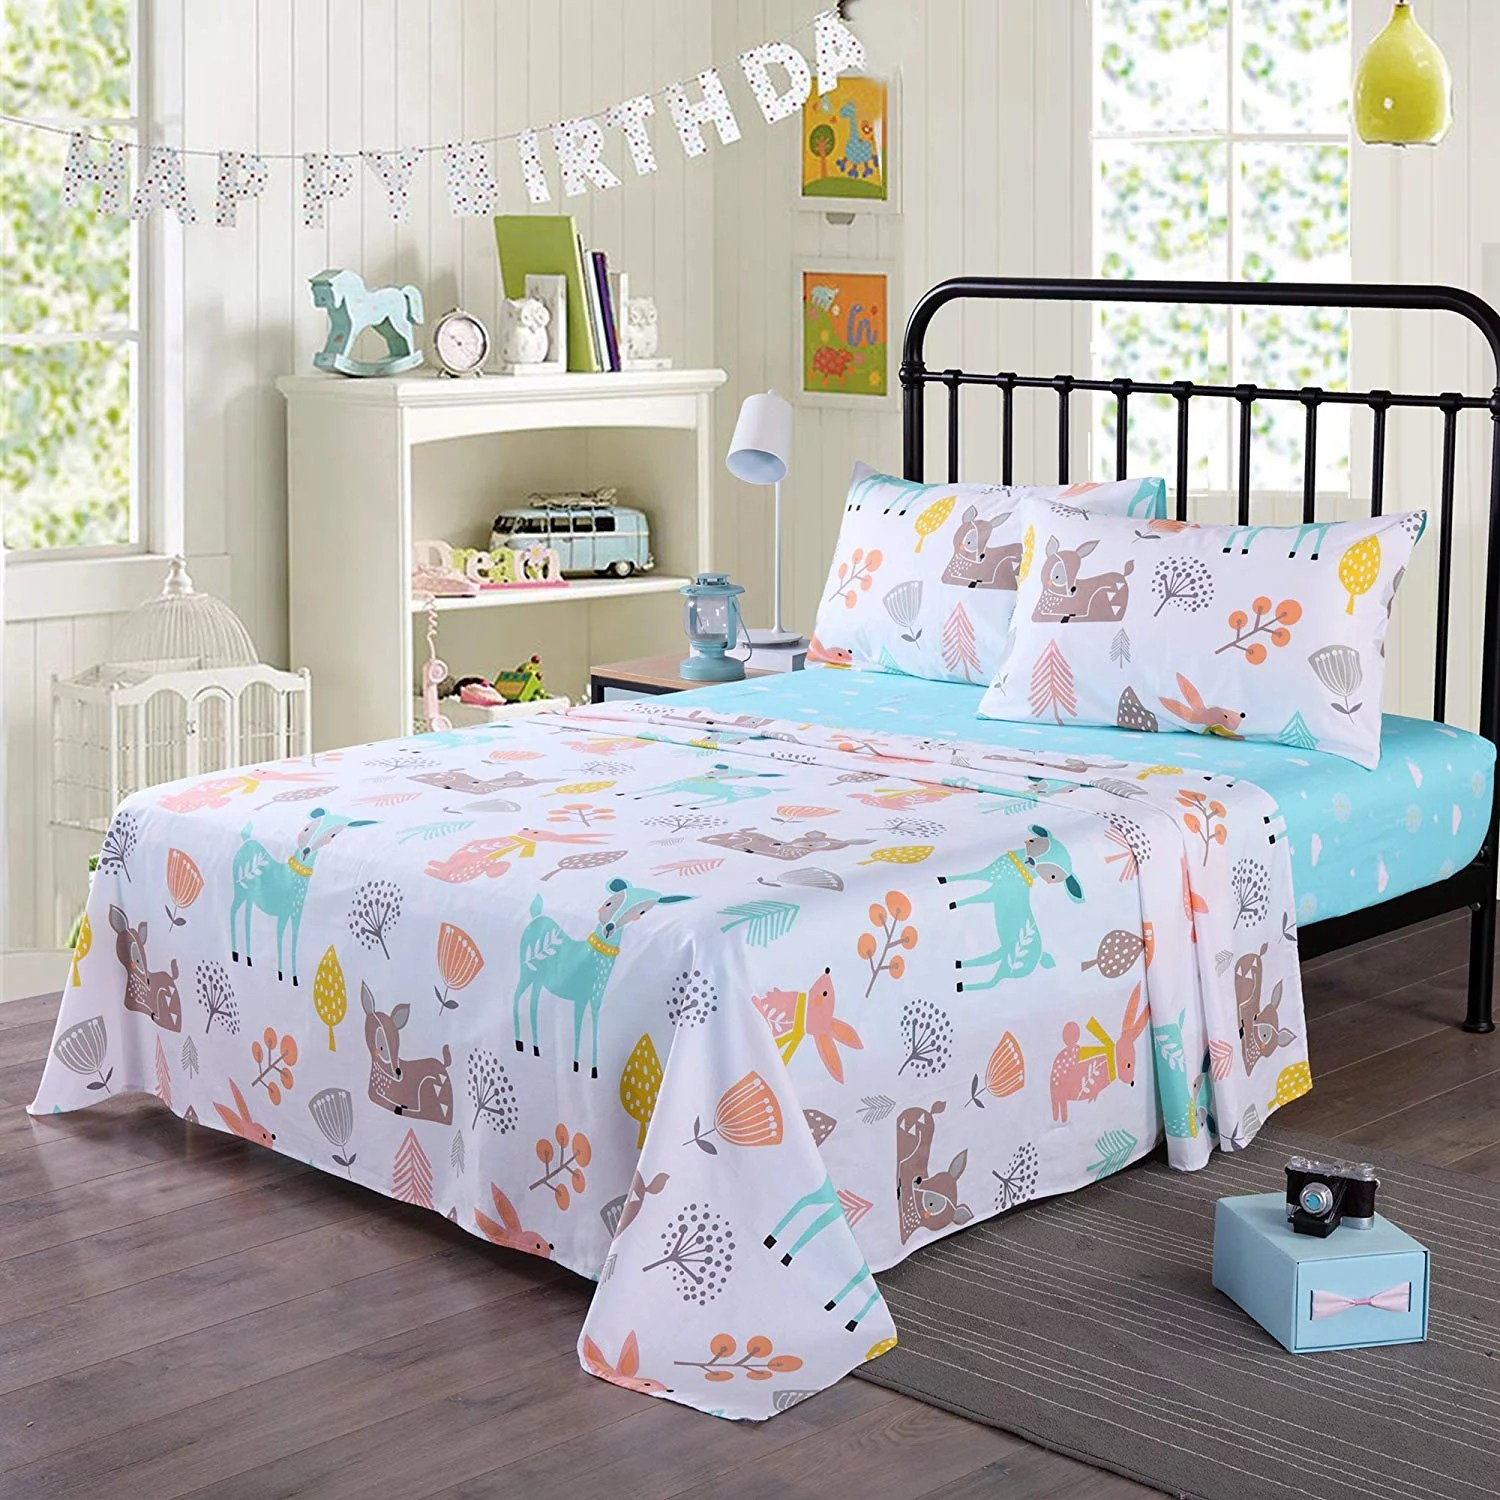 100 cotton sheets kids twin sheets for kids girls boys teens children sheets bed sheets for kids soft fitted flat printed sheet pillowcase bedding